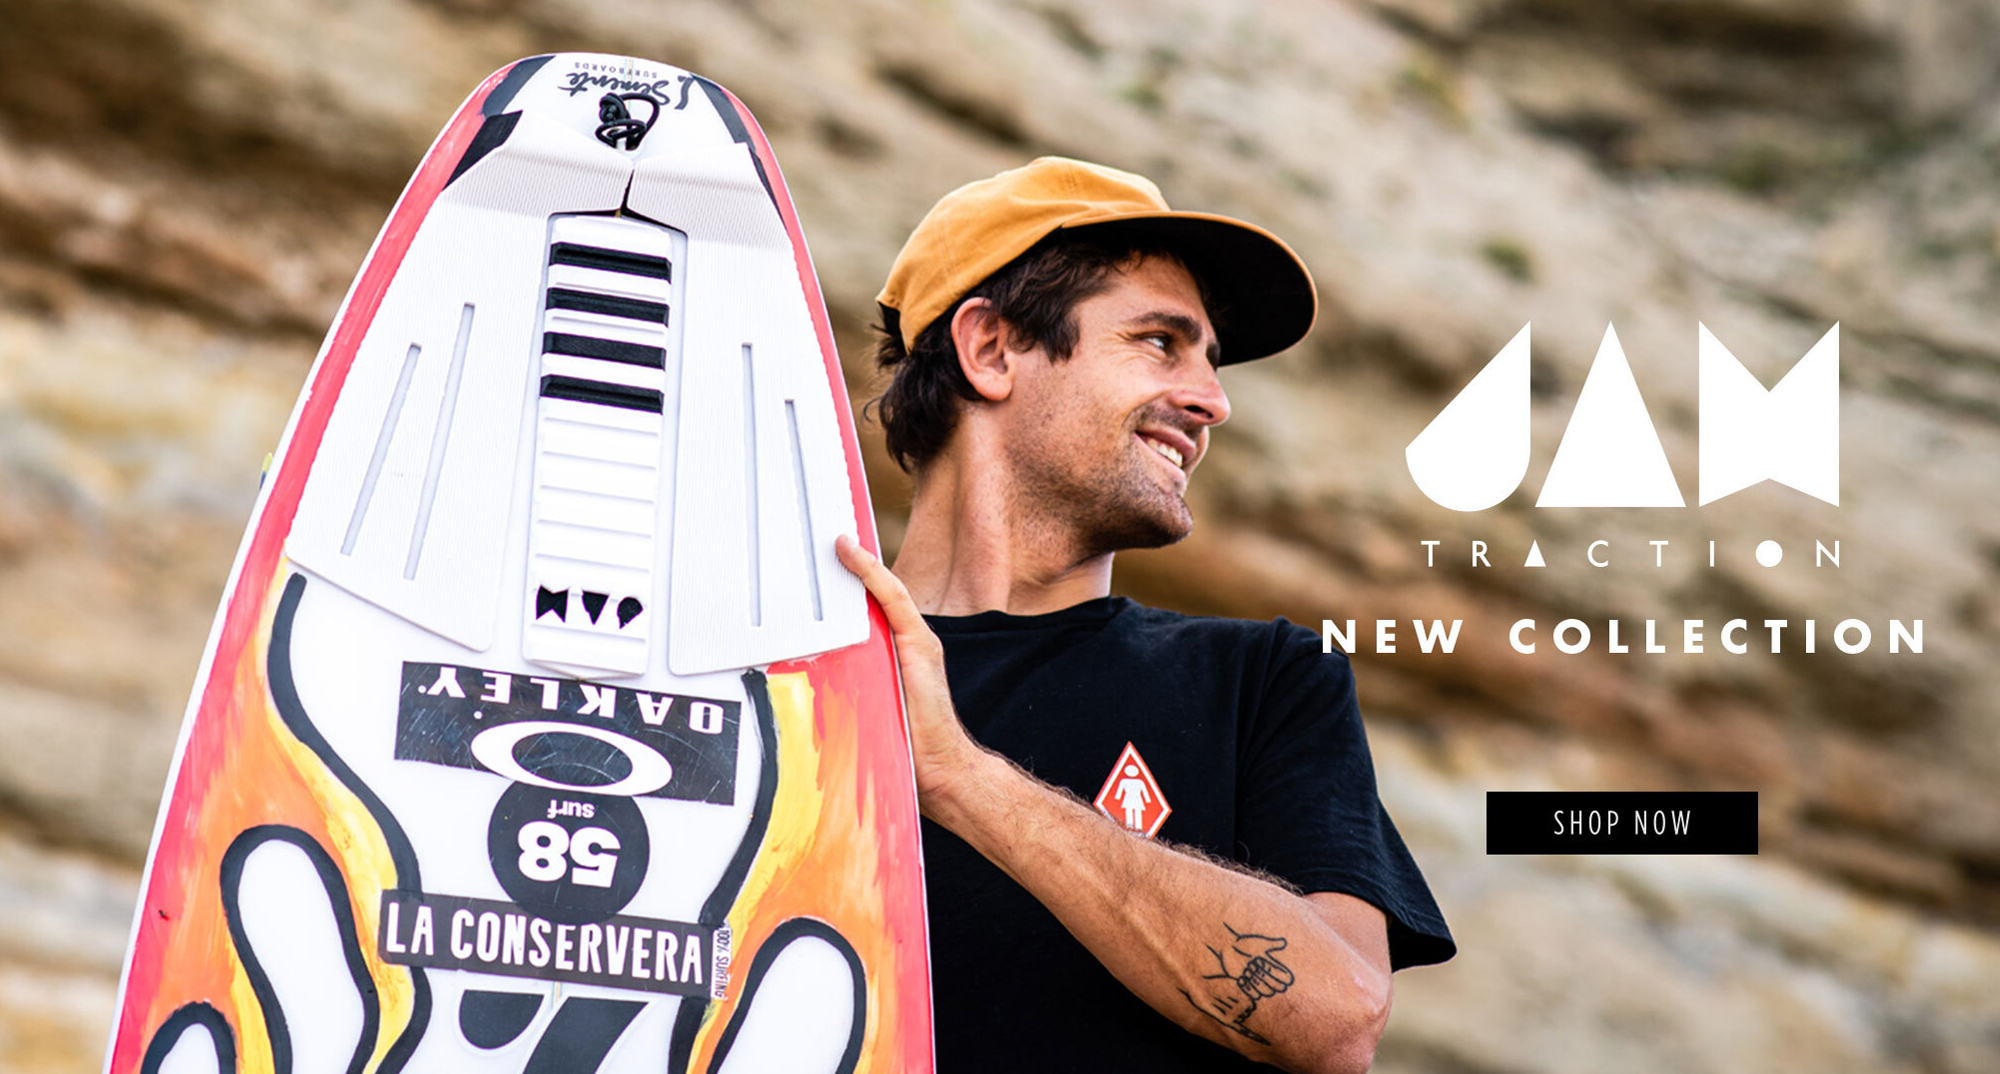 JAM new collection available in 58 Surf